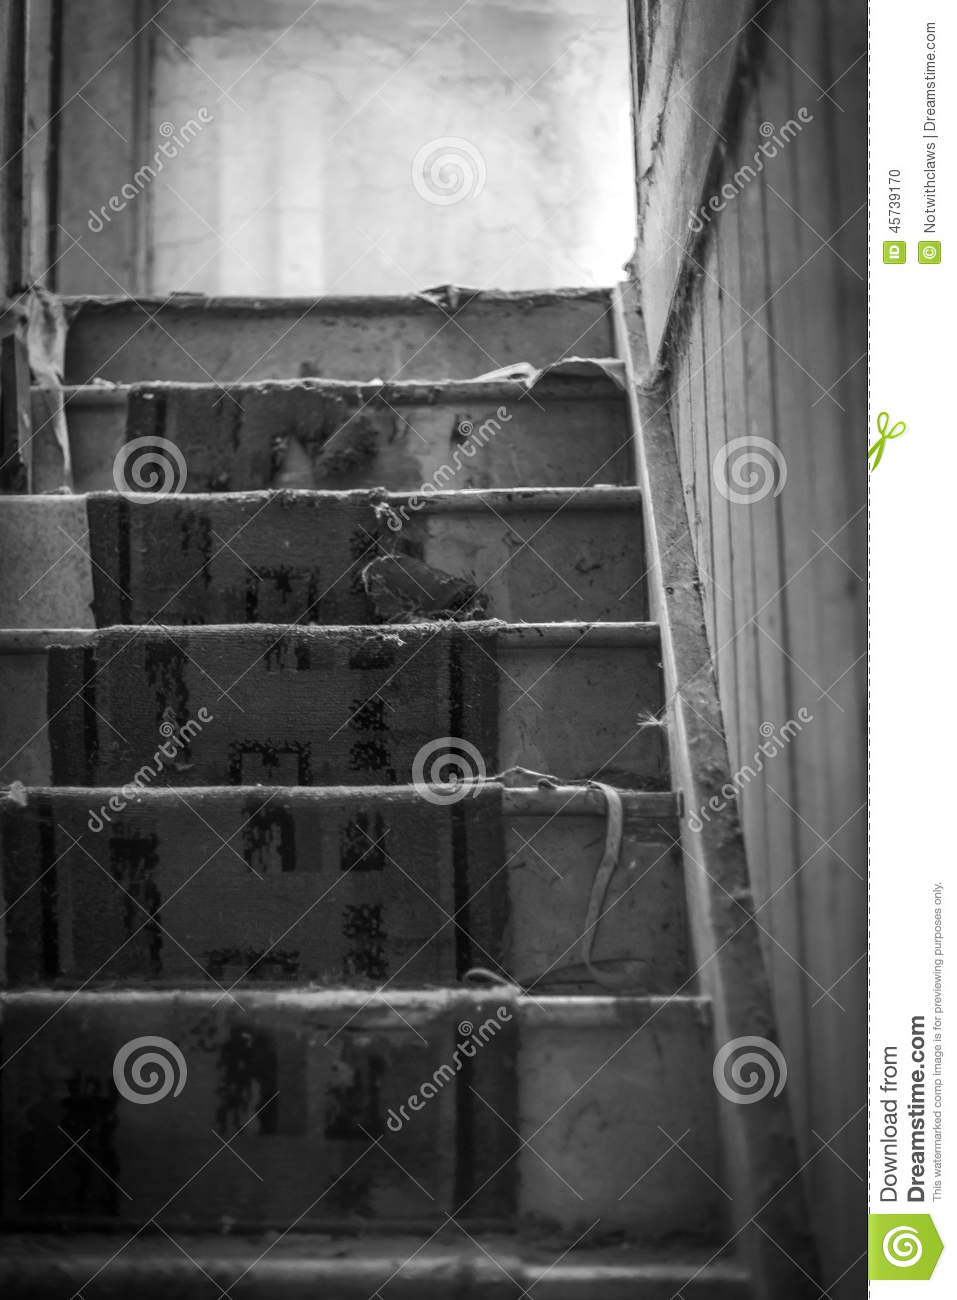 Worn Carpet Old Stairs Of Abandoned House Black And White Stock Photo Image 45739170